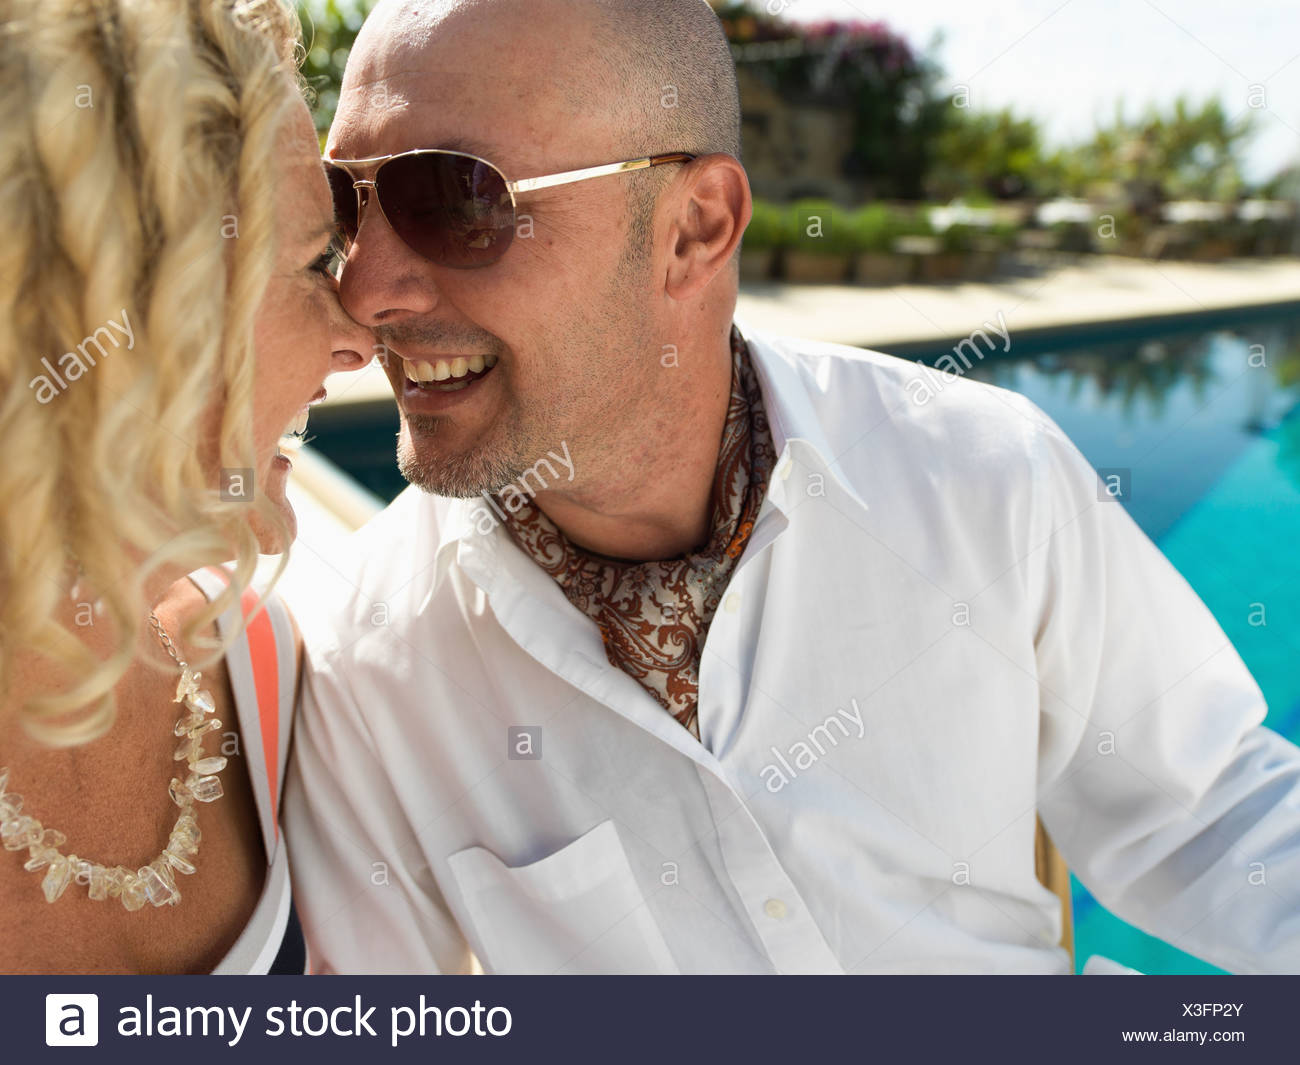 A well-built young man touches the nose tip of a pretty woman by his nose tip by the side of a swimming pool in San Diego. - Stock Image